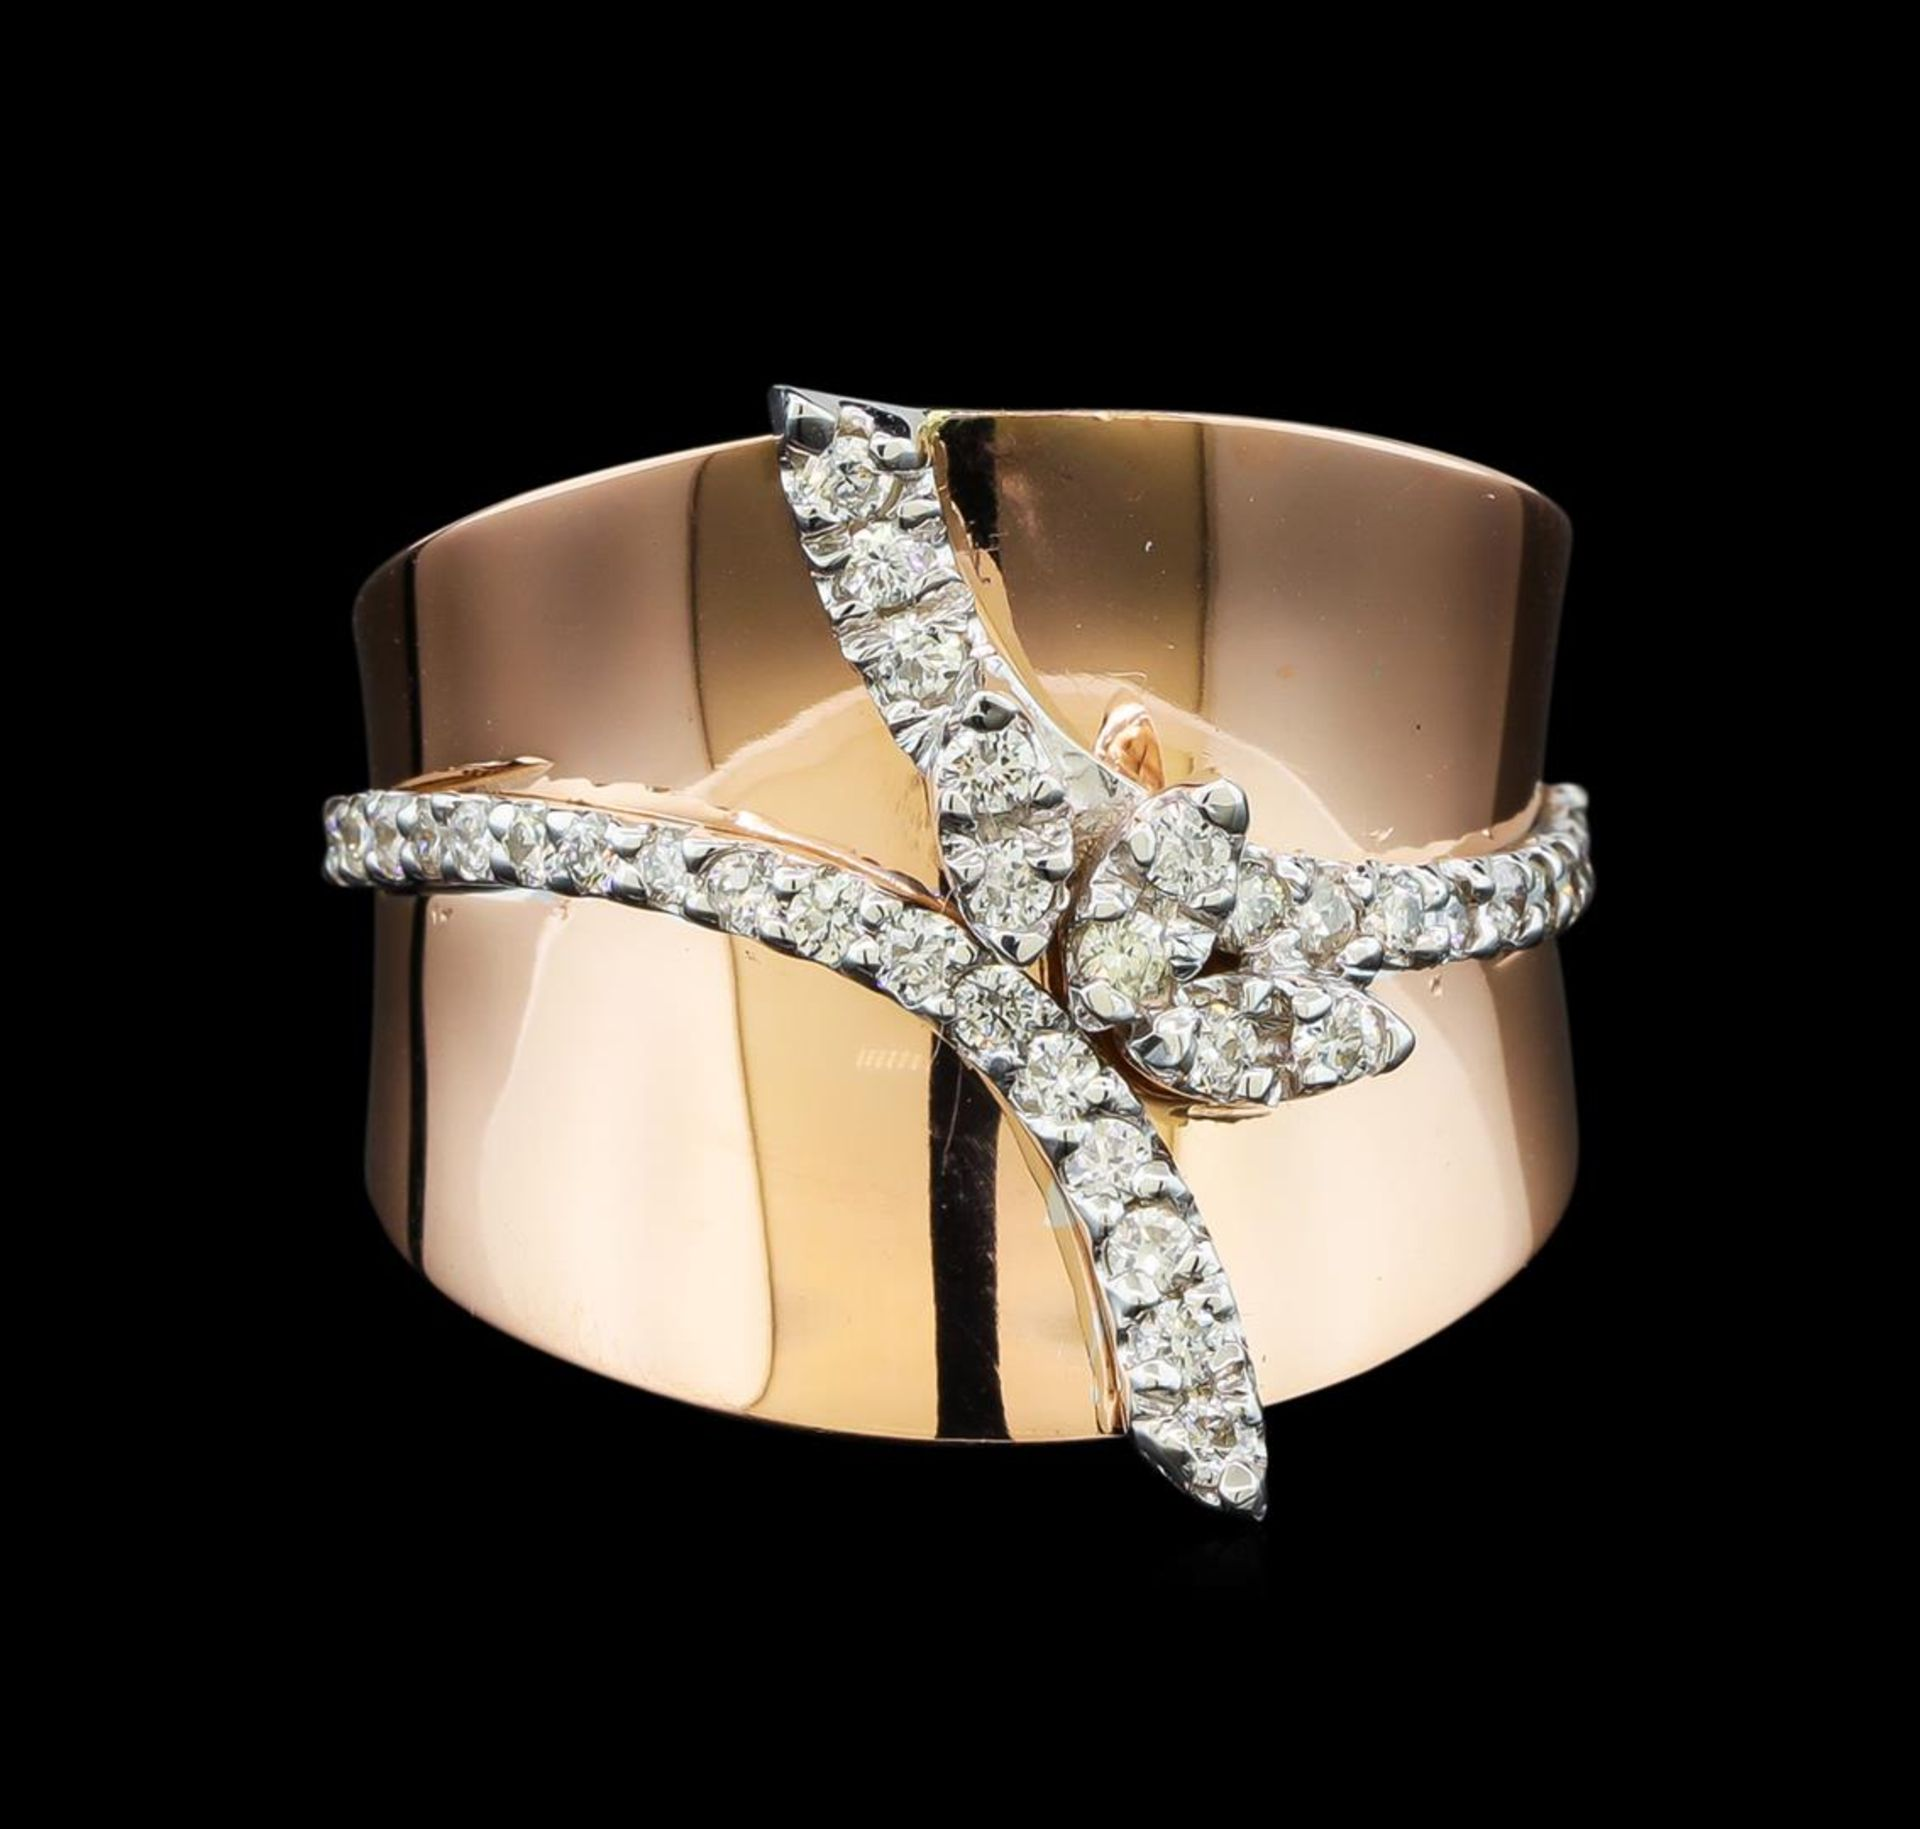 0.45ctw Diamond Ring - 14KT Two Tone Gold - Image 2 of 4